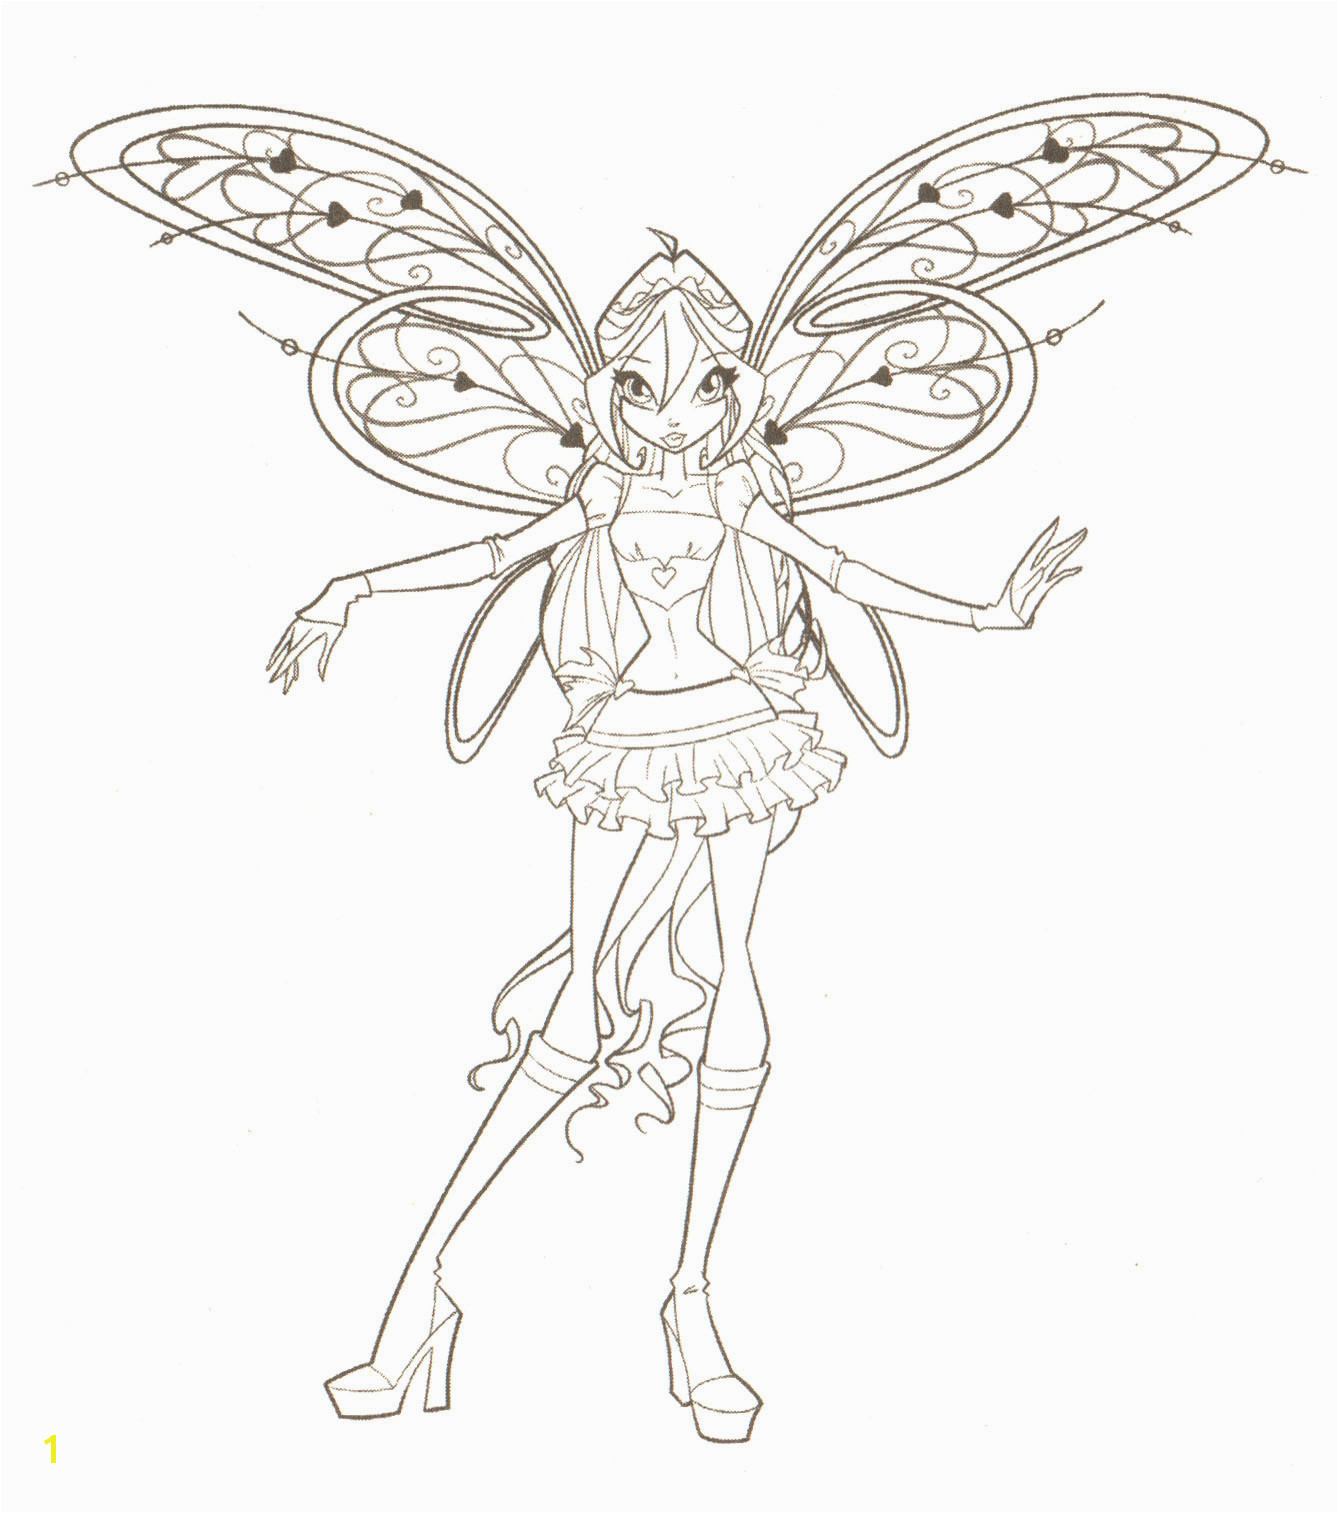 Winx Club Coloring Pages Hd Fond D écran and Background Schön Winx Club Ausmalbilder Musa Ausmalbild Bloom Believix